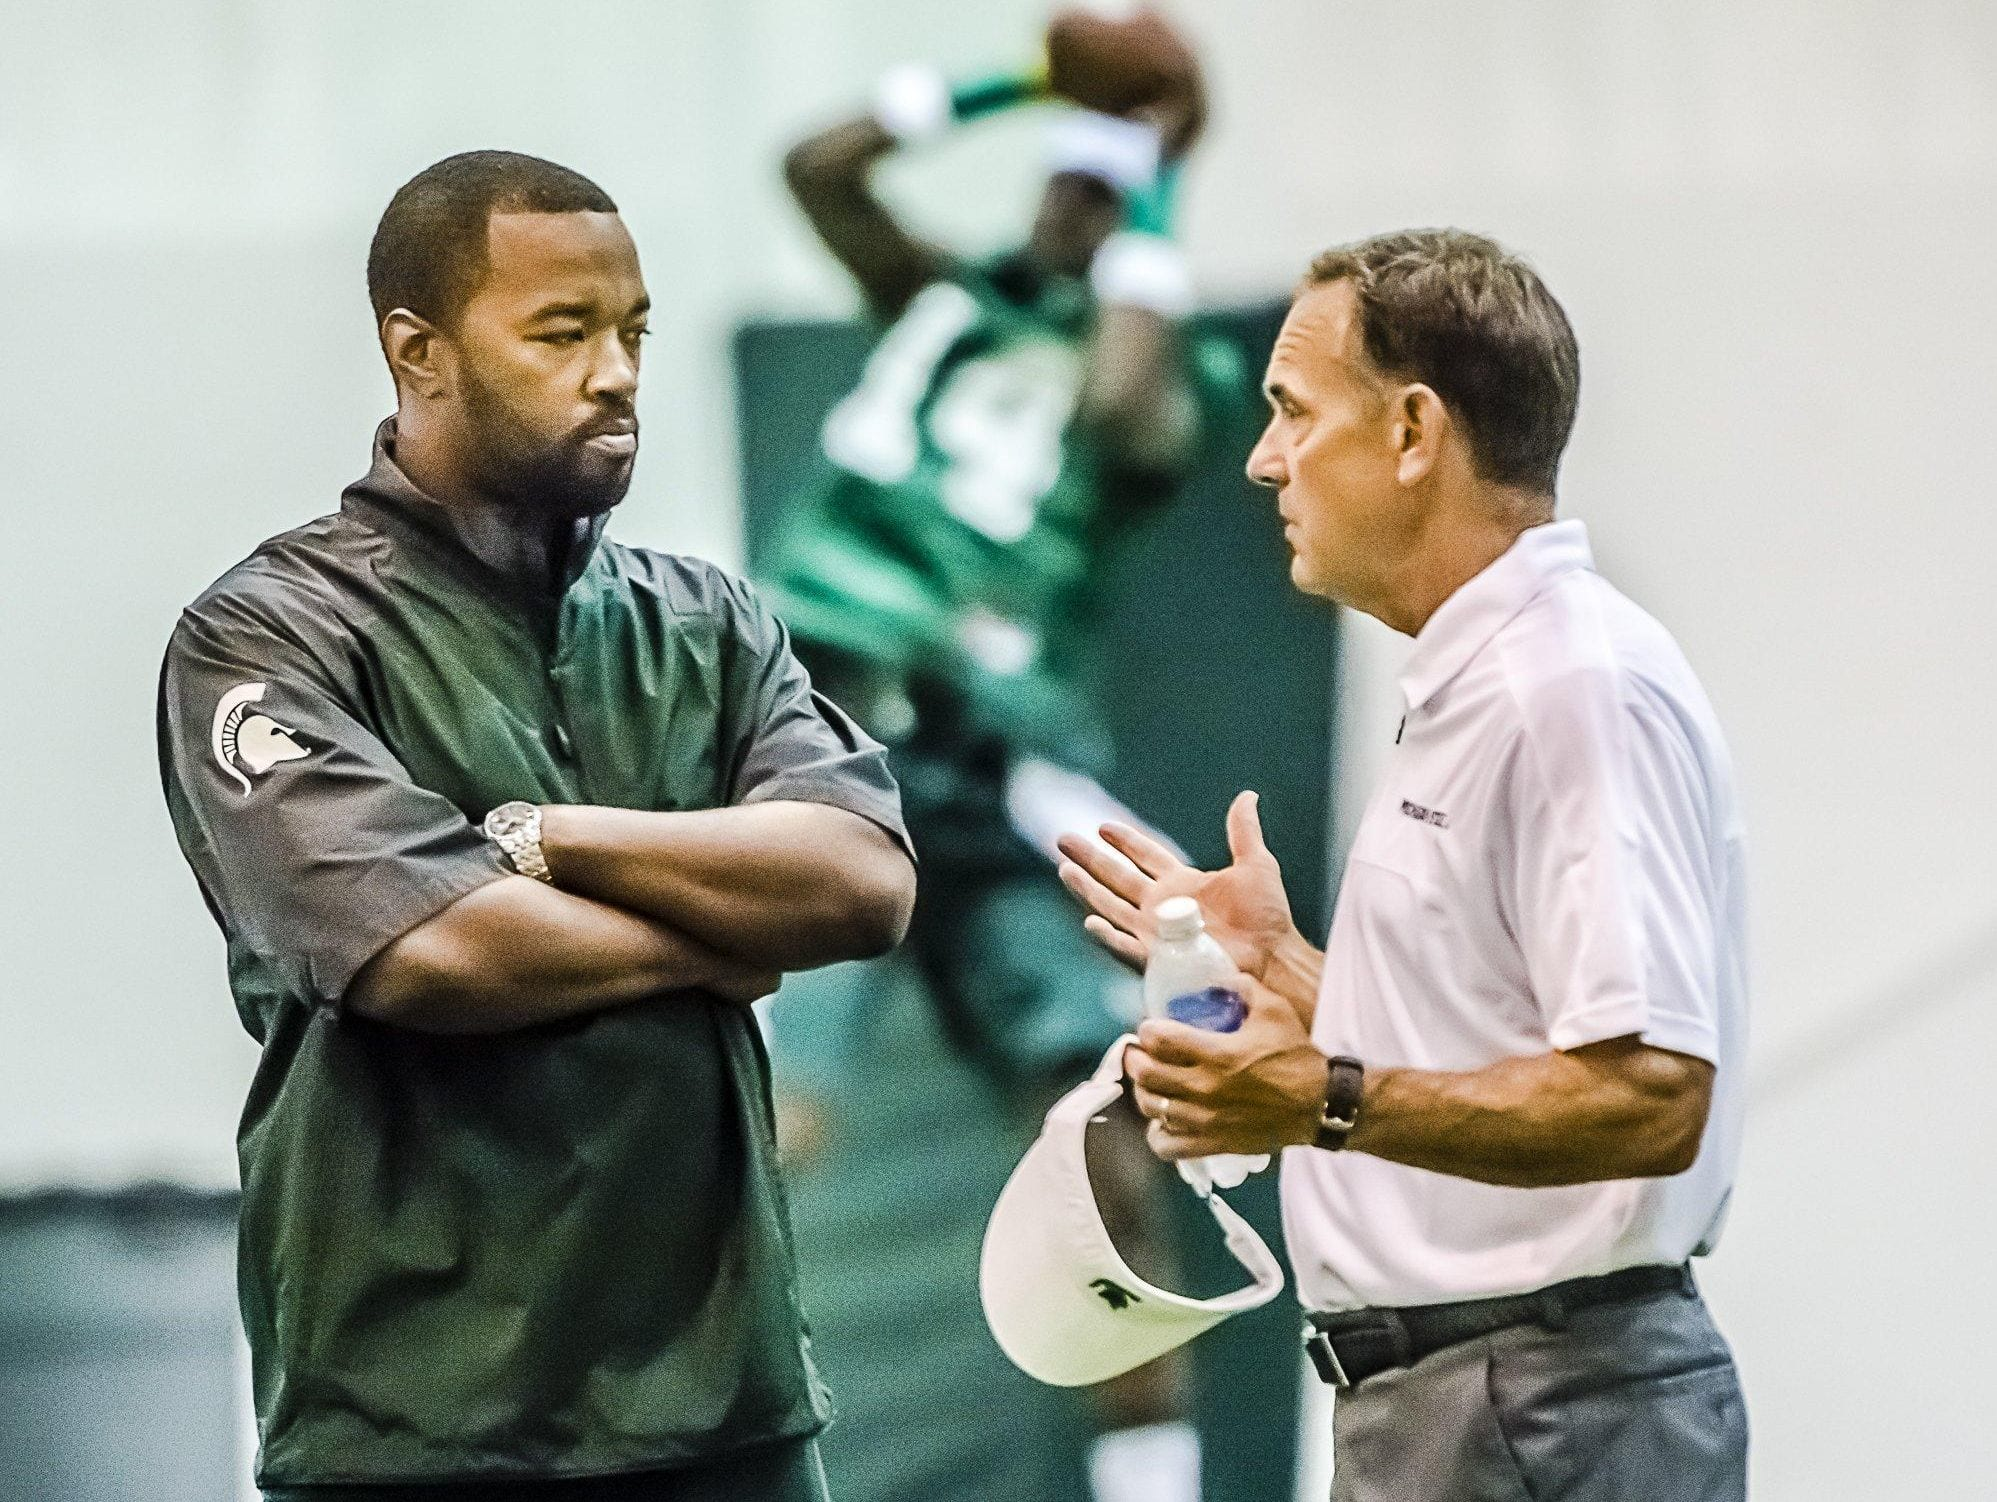 Curtis Blackwell, left, coordinates recruiting for MSU coach Mark Dantonio. The process has changed since Blackwell went through it.